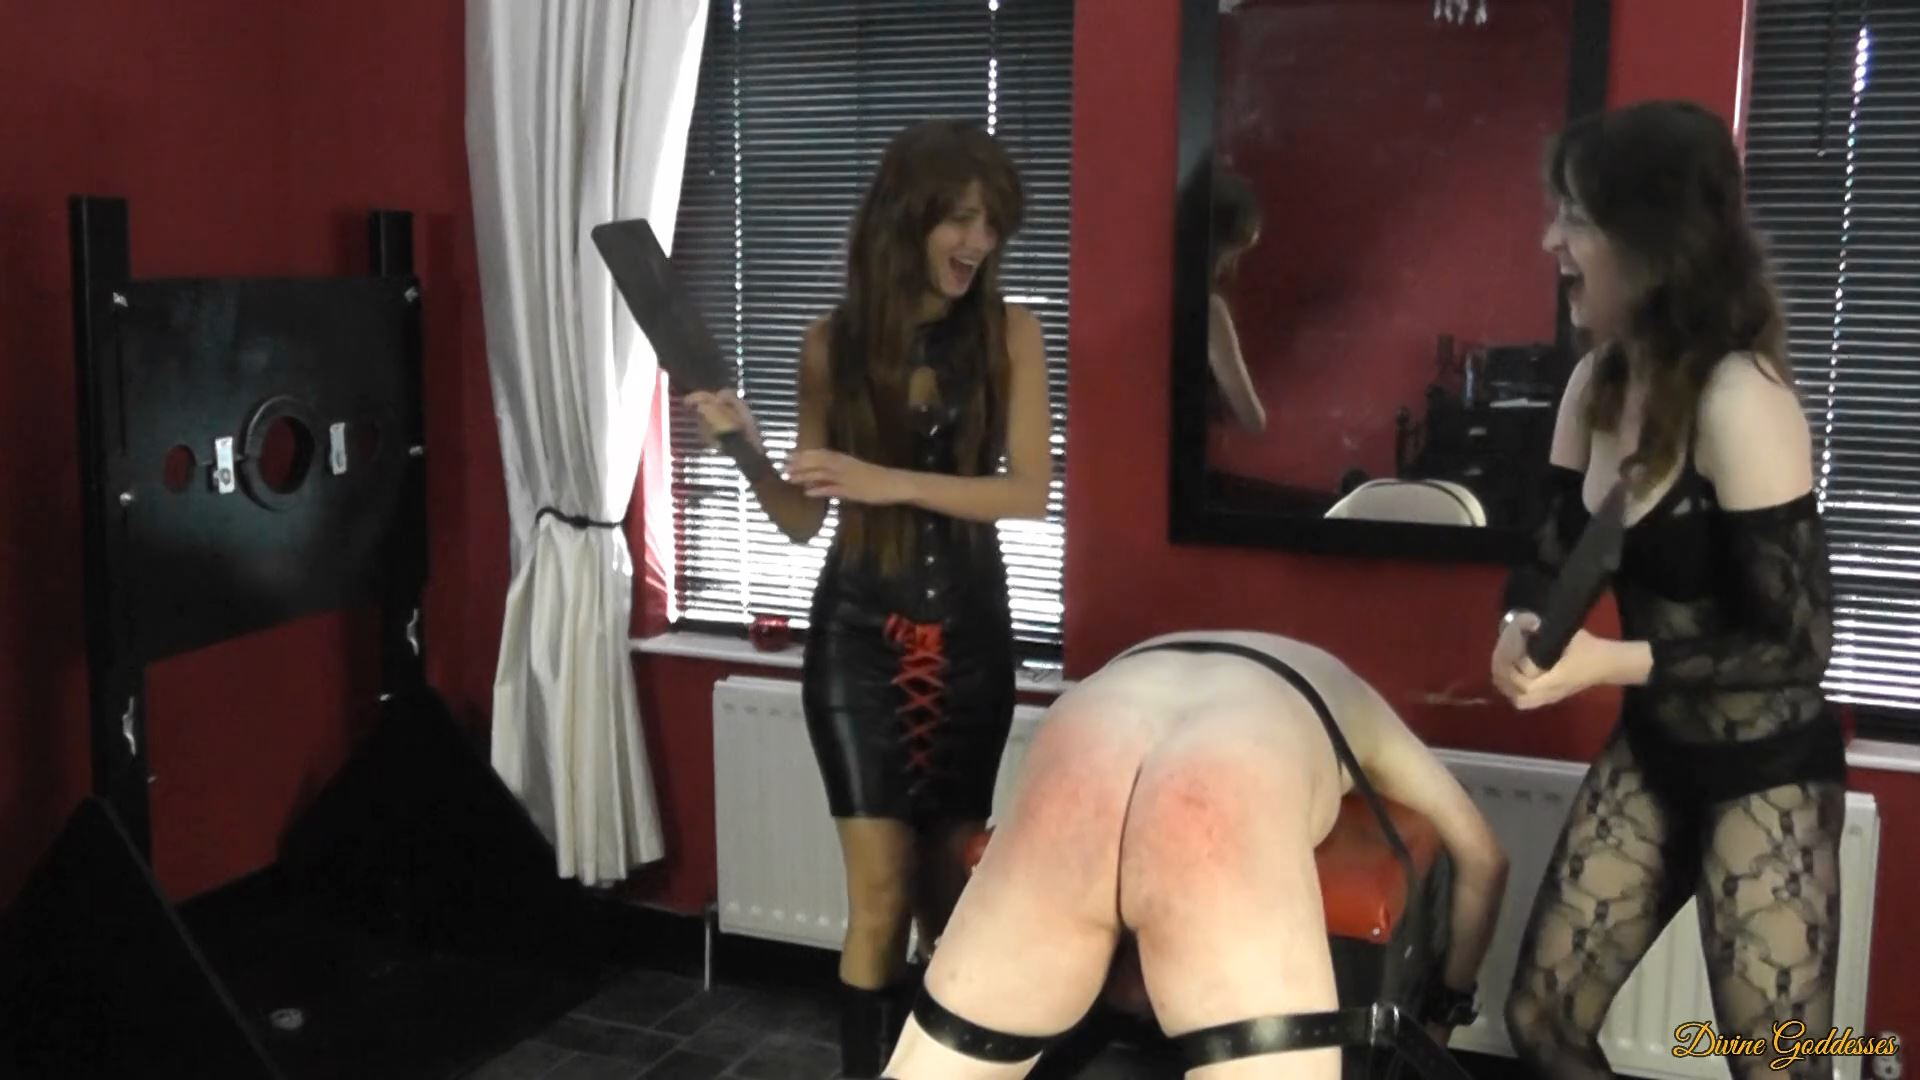 MISTRESS MARY ANN, MISTRESS PORCELAIN BEAUTY In Scene: THE NEW BOY GETS A DOUBLE SPANKING EXTRA HARD - DIVINEGODDESSES - FULL HD/1080p/MP4